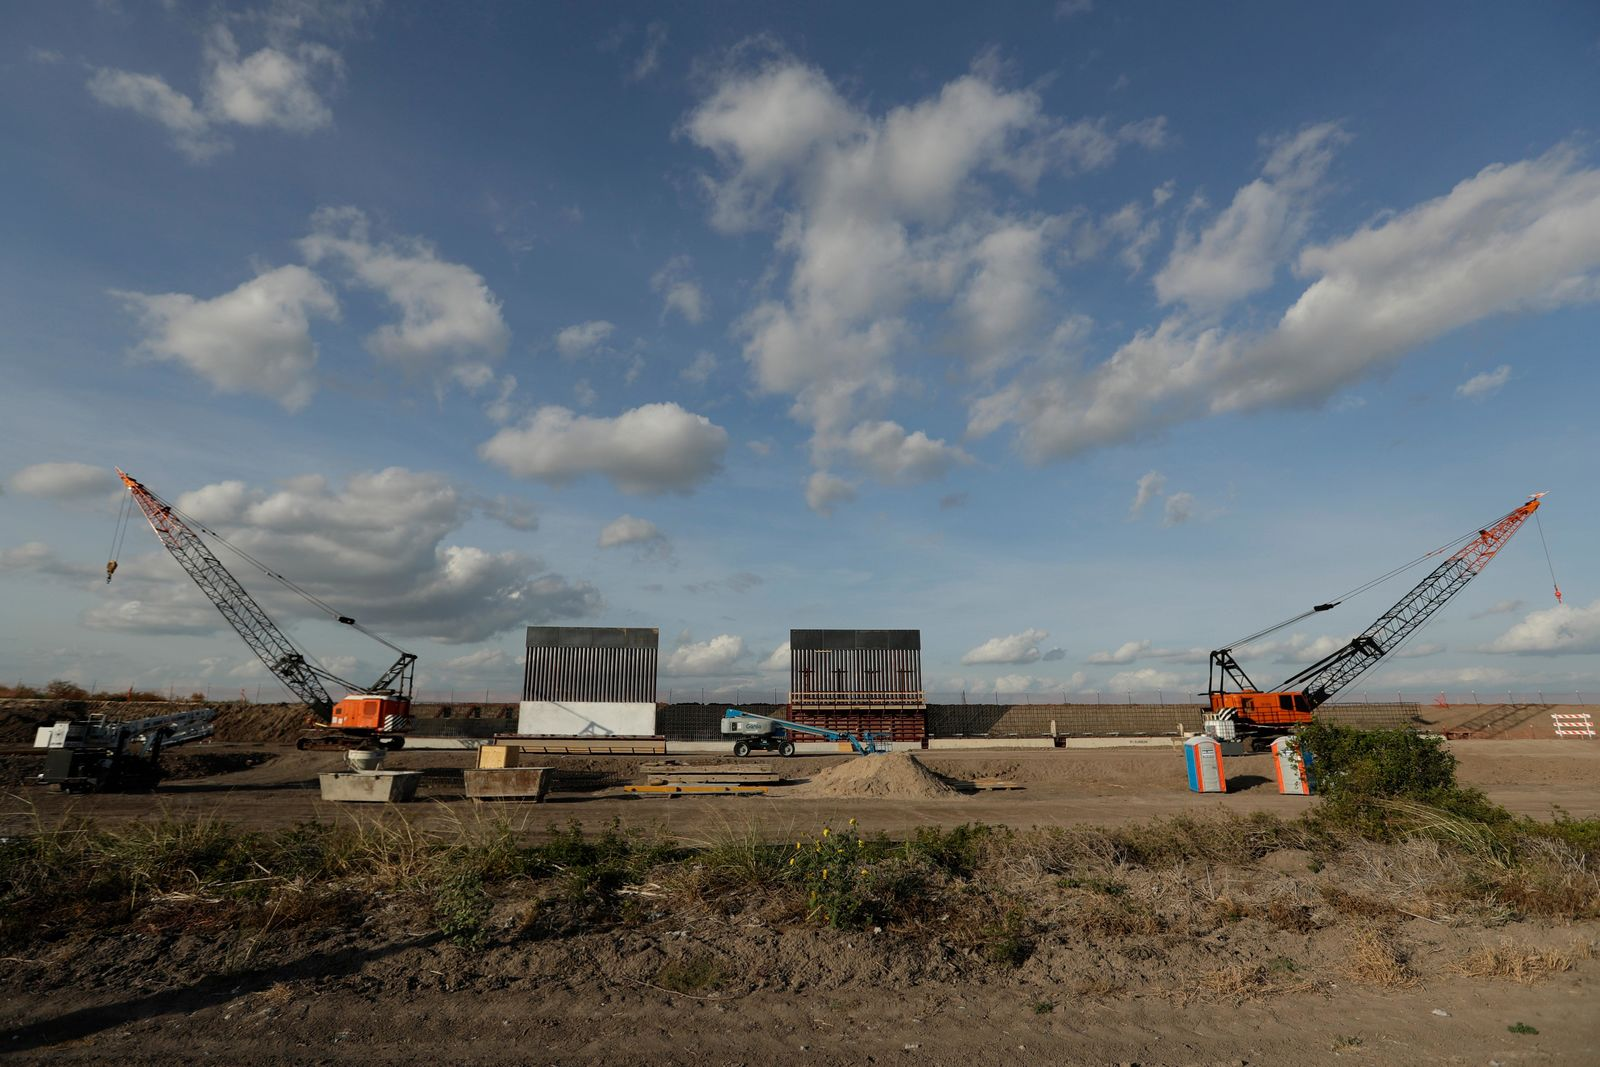 FILE - In this Nov. 7, 2019, file photo the first panels of levee border wall are seen at a construction site along the U.S.-Mexico border in Donna, Texas. A federal appeals court hears arguments against diverting Pentagon money for border wall construction as time runs out. It says the Trump administration has moved quickly to spend the money after the Supreme Court rejected an emergency appeal to prevent work from starting in July. (AP Photo/Eric Gay, File)